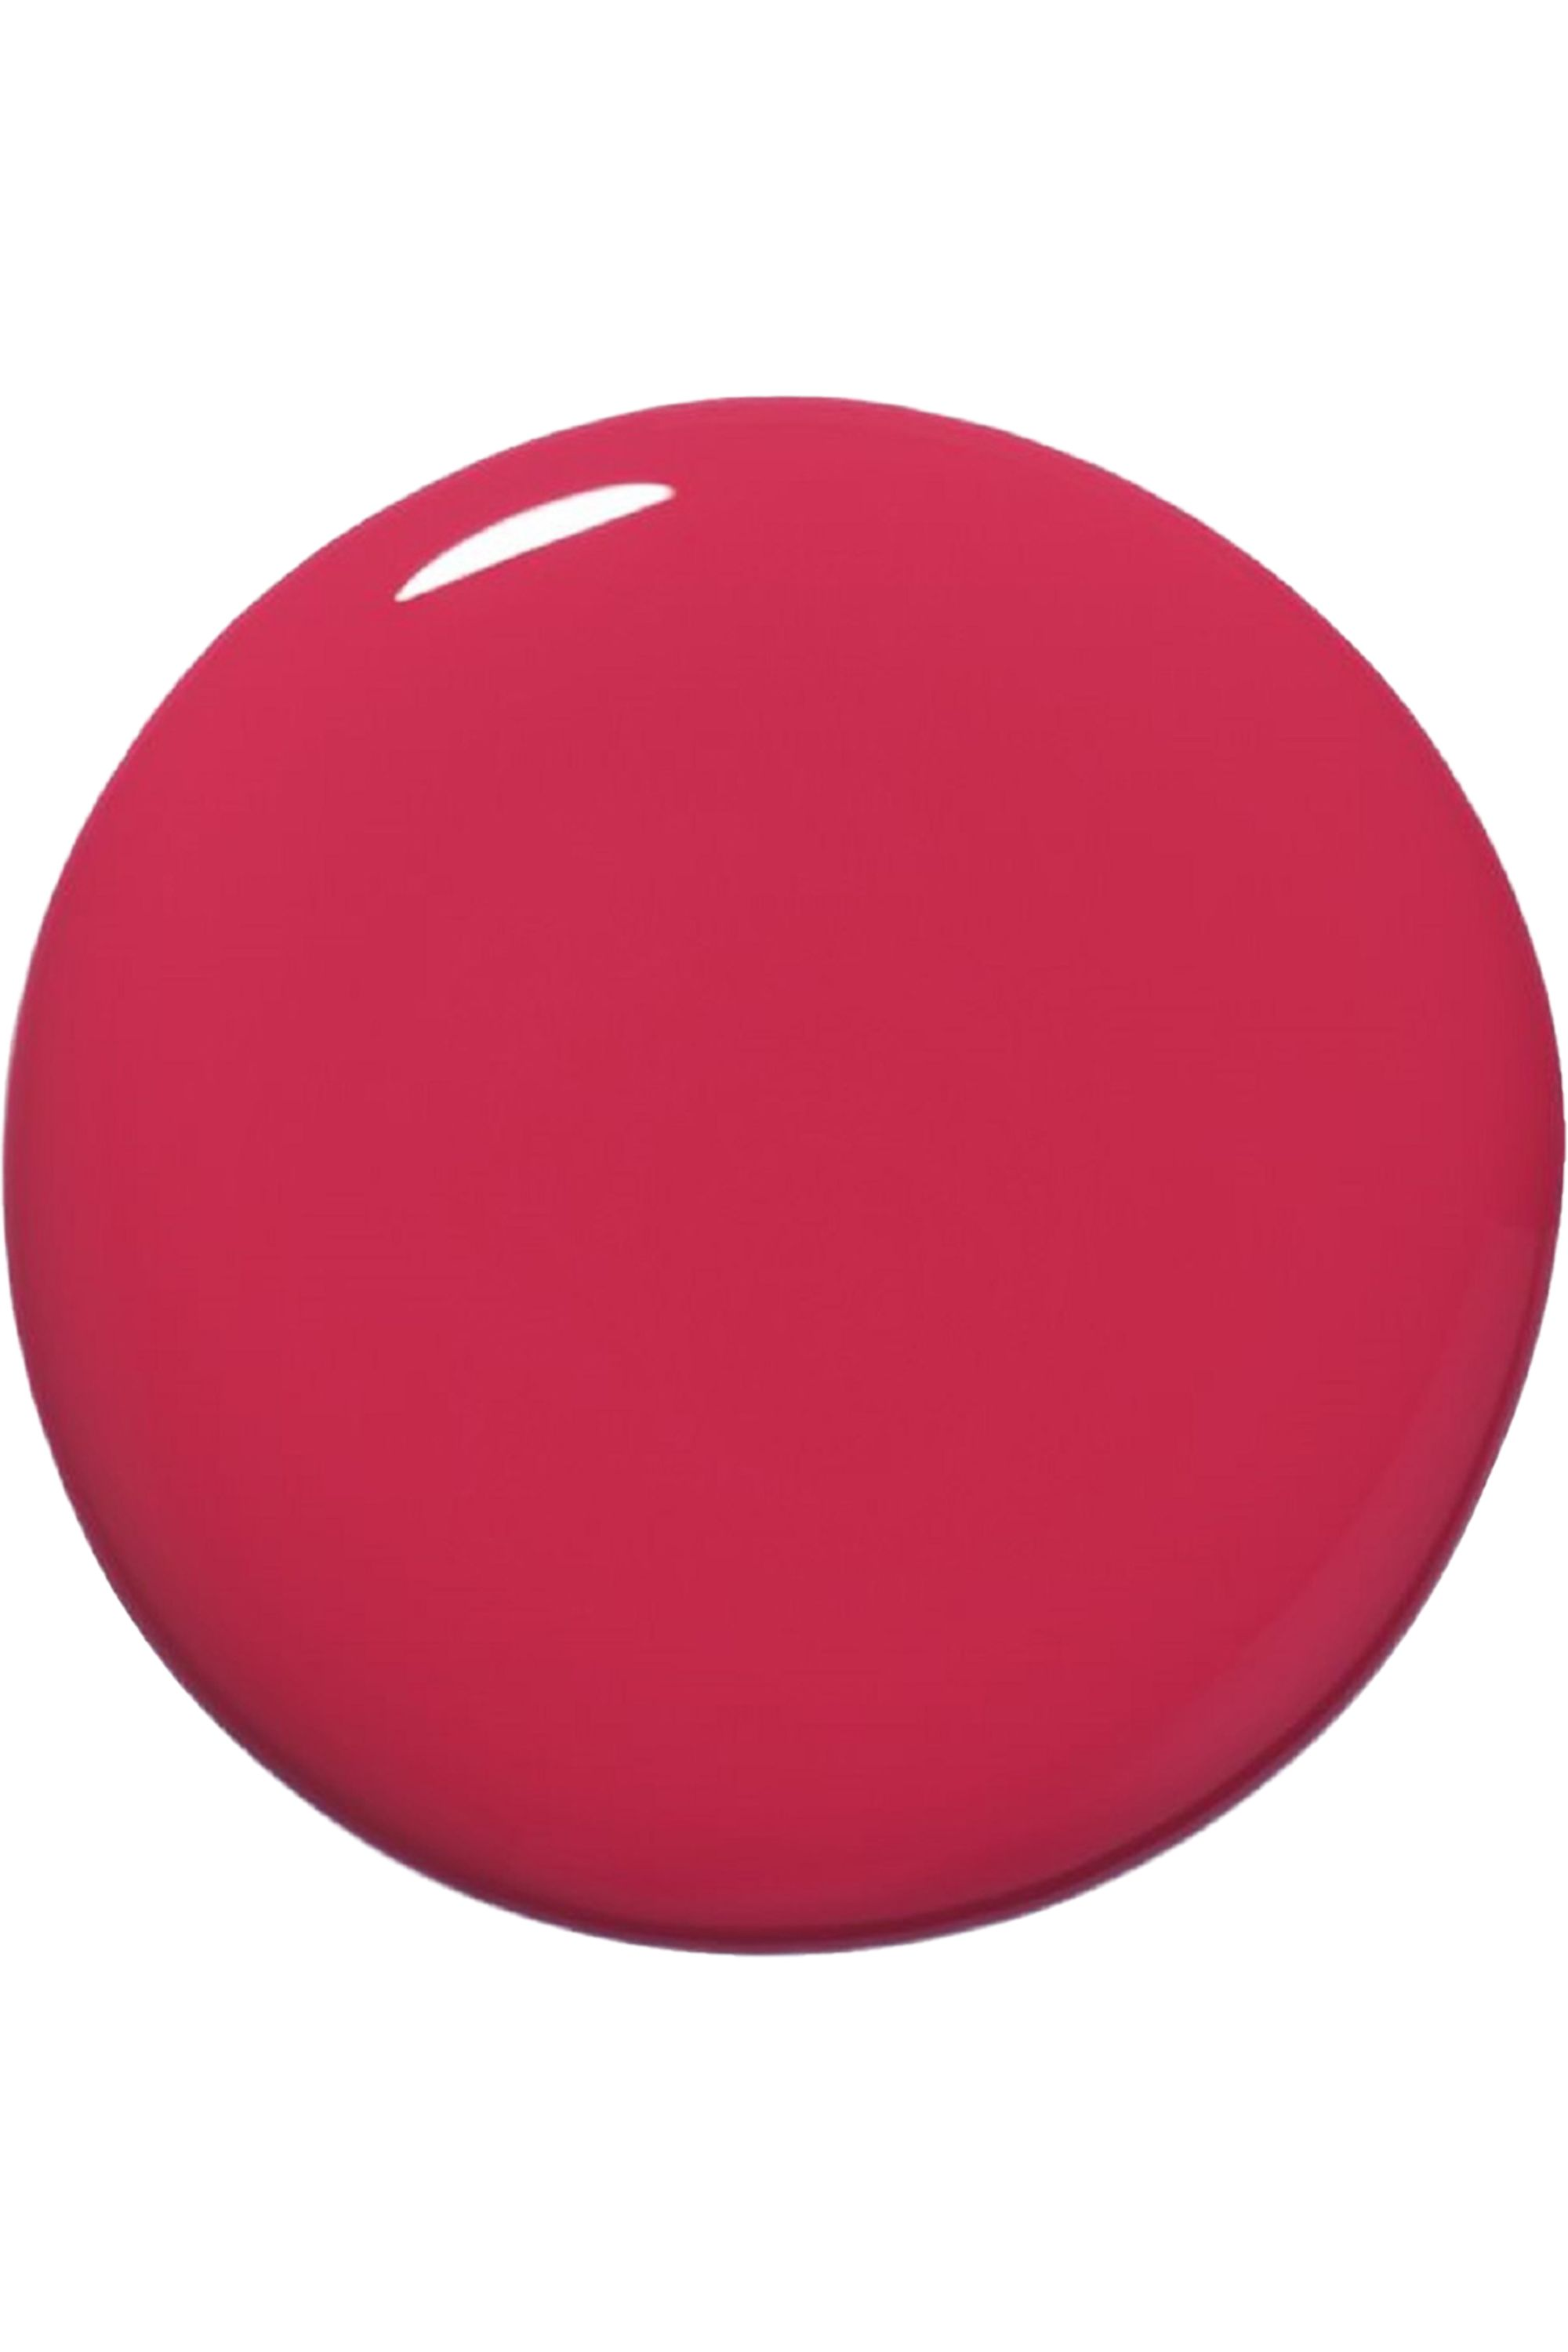 Blissim : Clinique - Rouge à lèvres laque fini brillant + base lissante Clinique Pop™ - Sweetie Pop